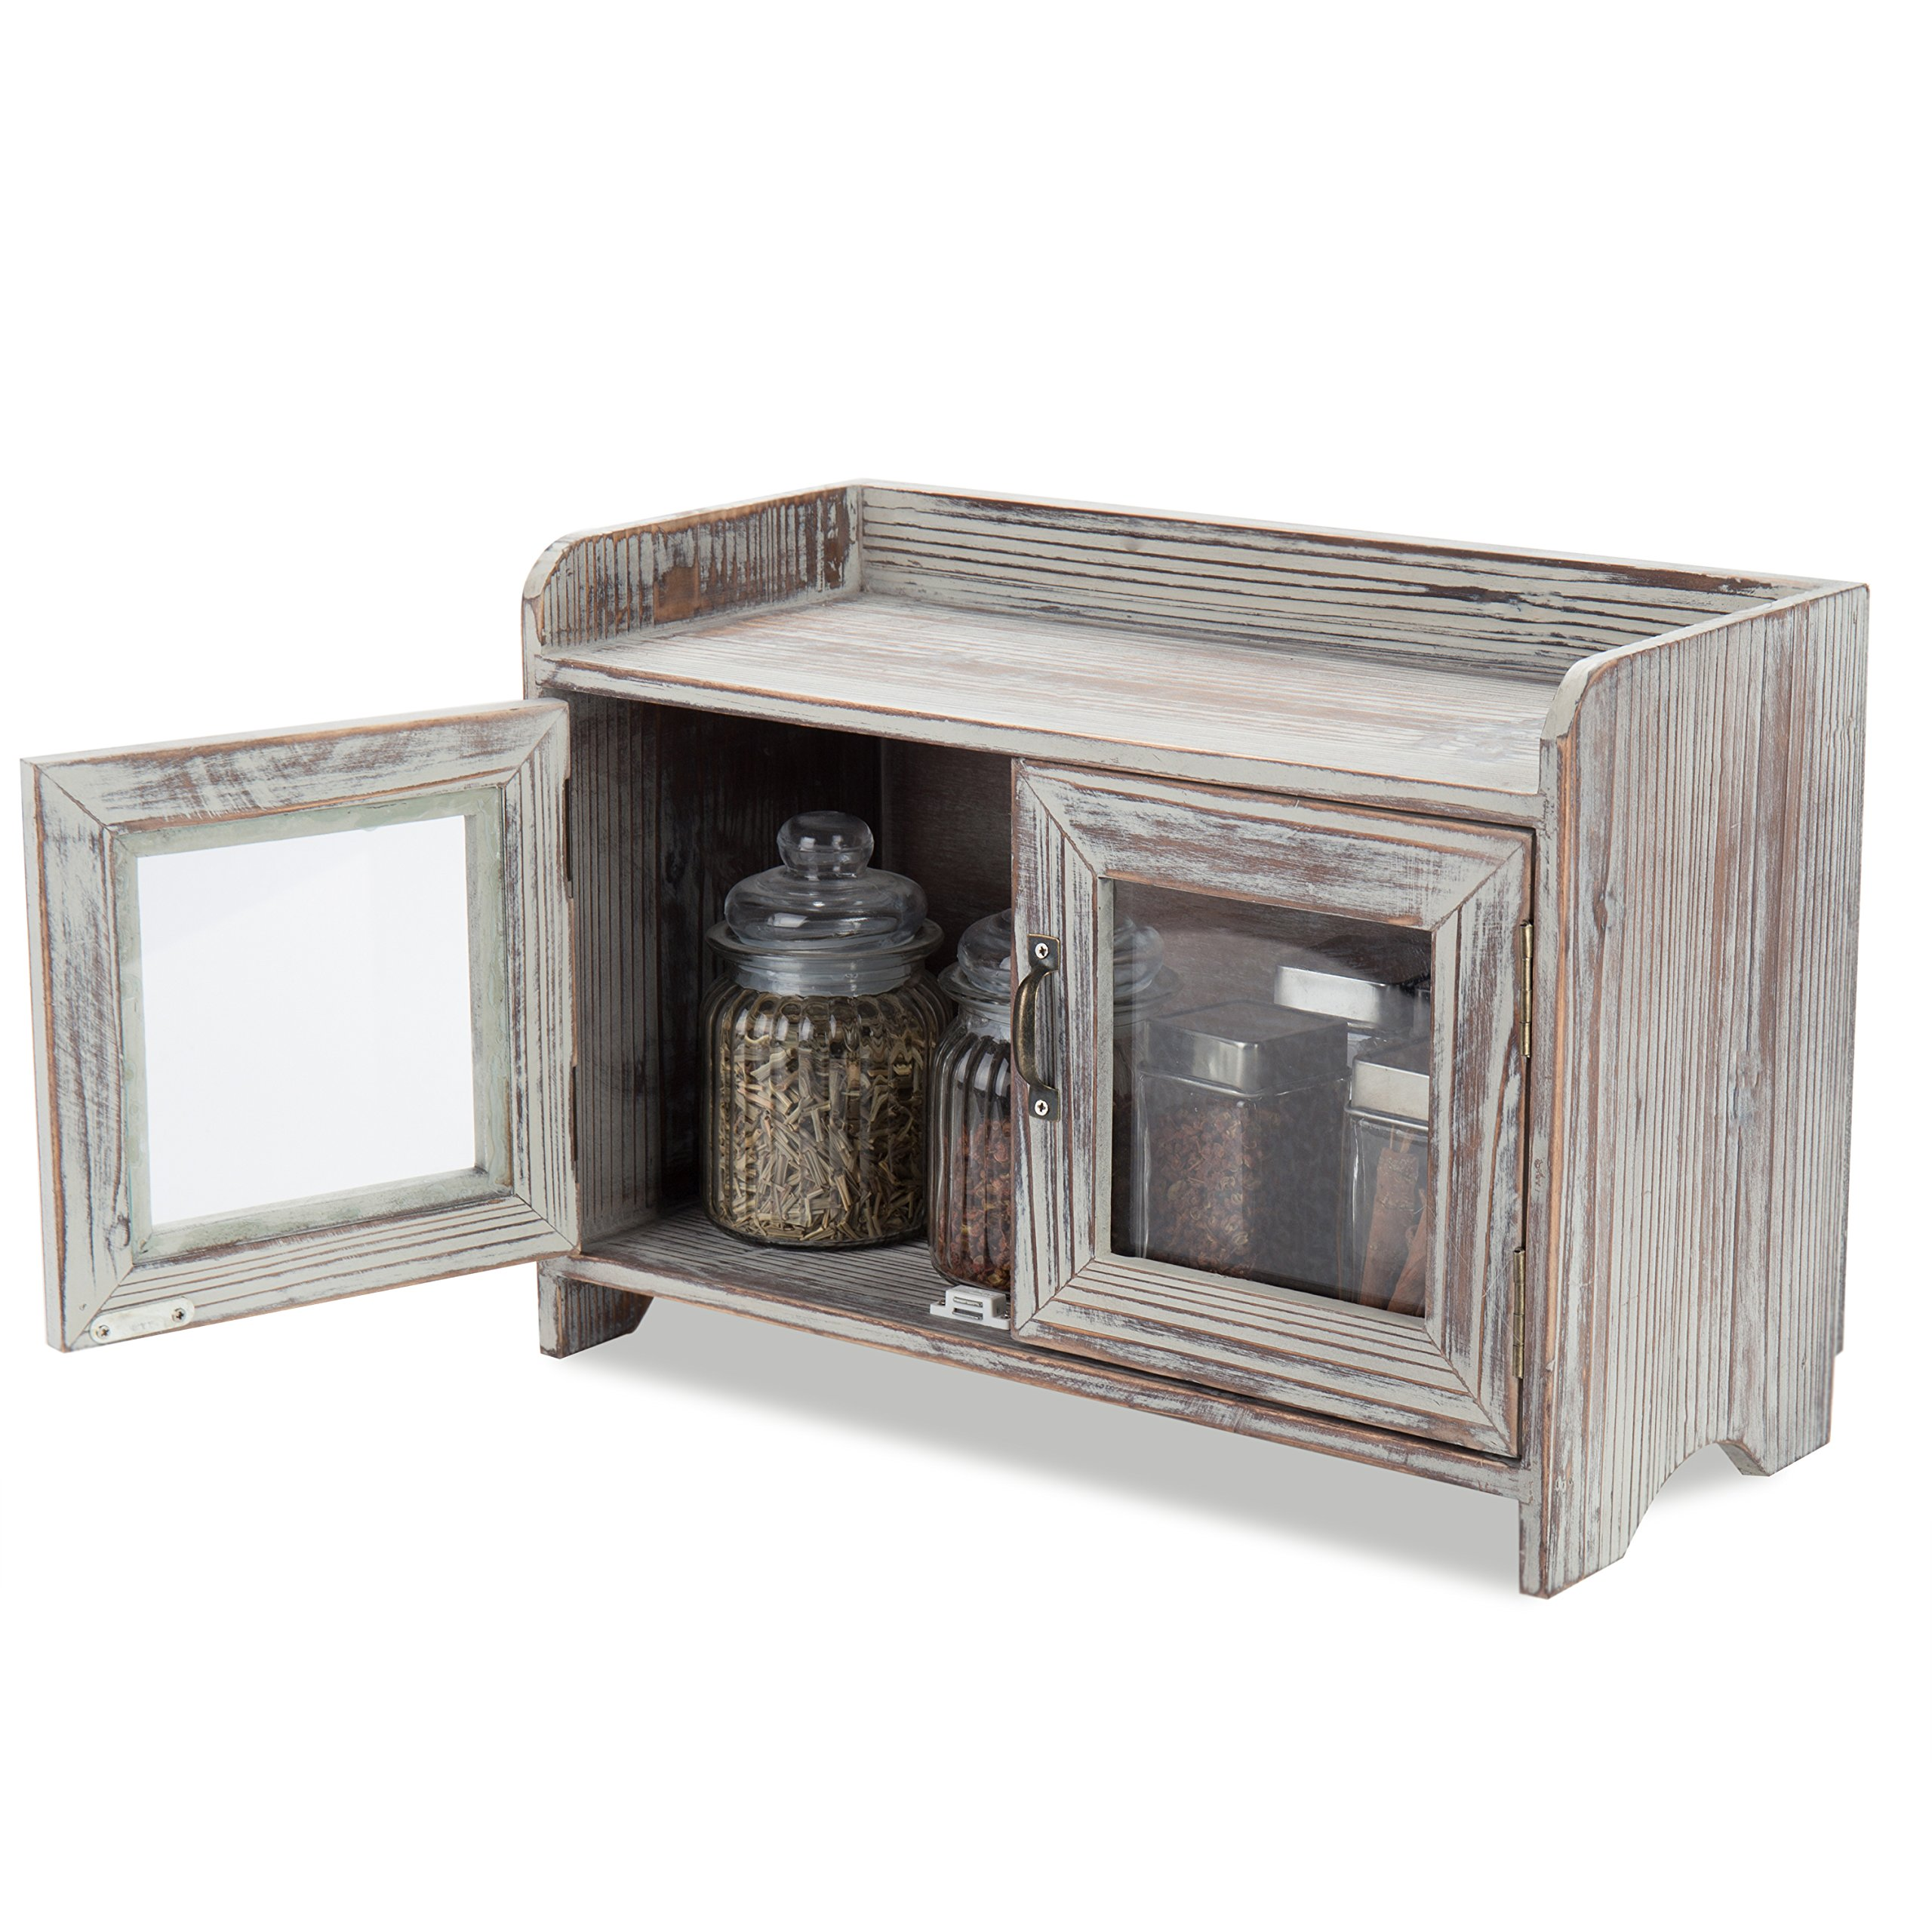 MyGift Rustic Wood Kitchen & Bathroom Countertop Cabinet w/Glass Windows by MyGift